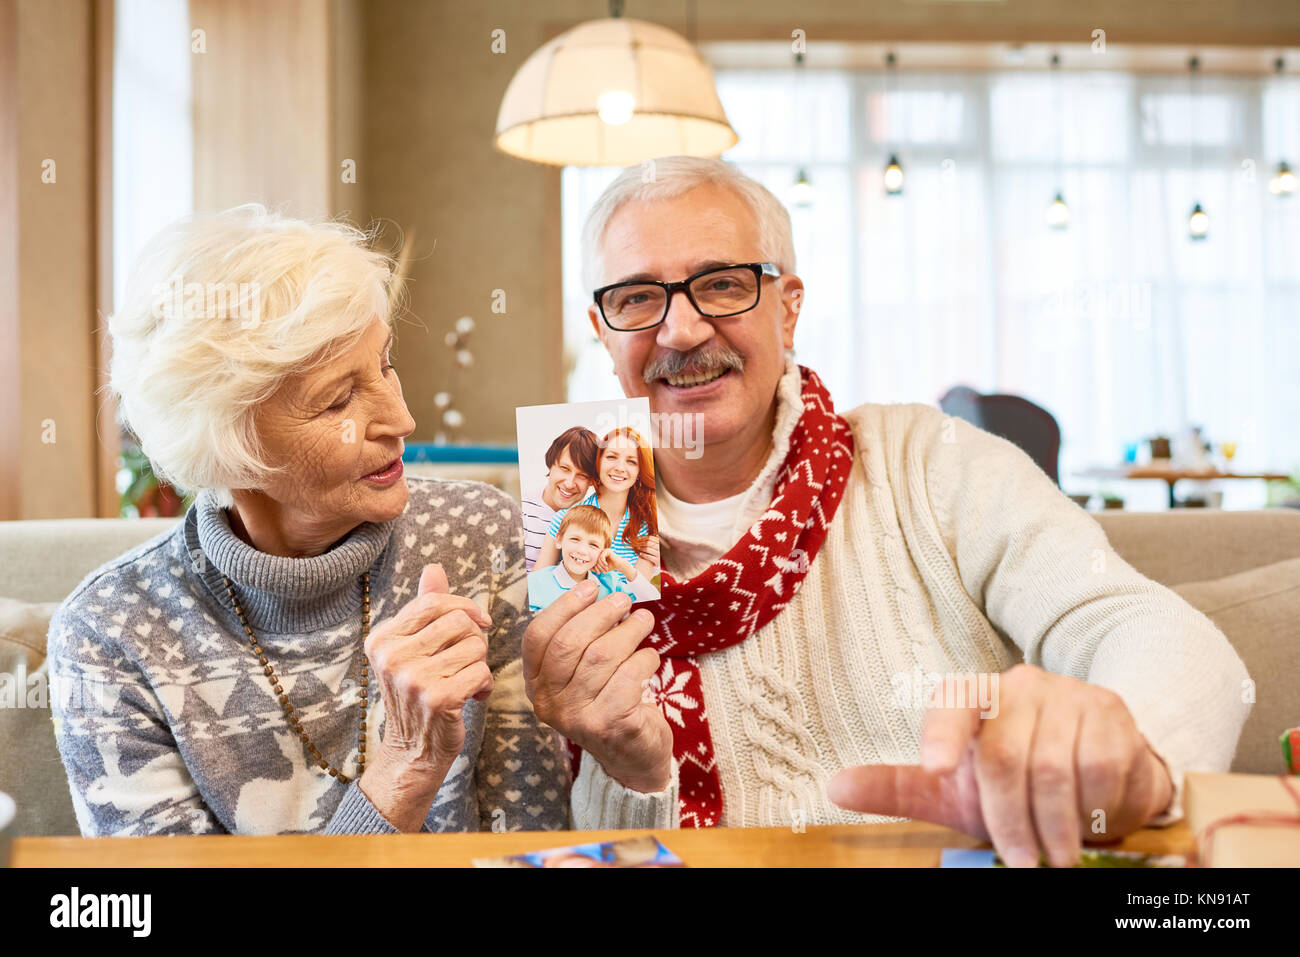 Senior Couple Remembering  Family on Christmas - Stock Image